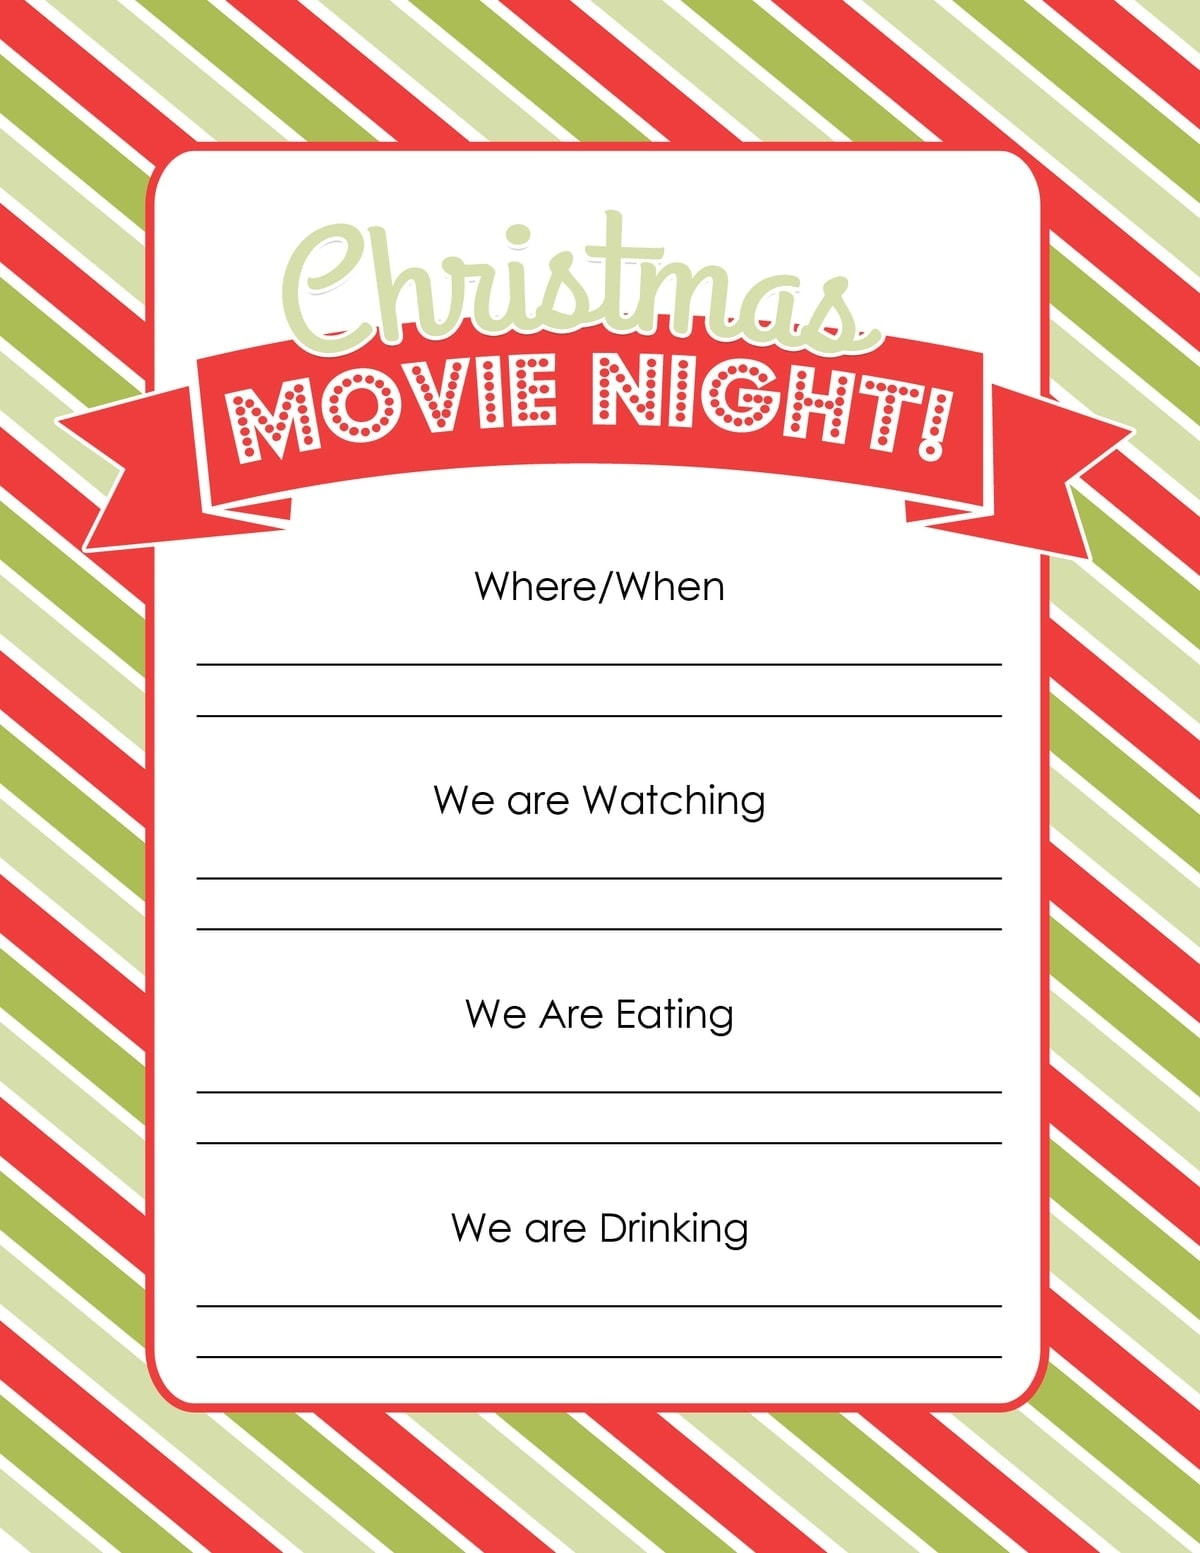 christmas party invites wording